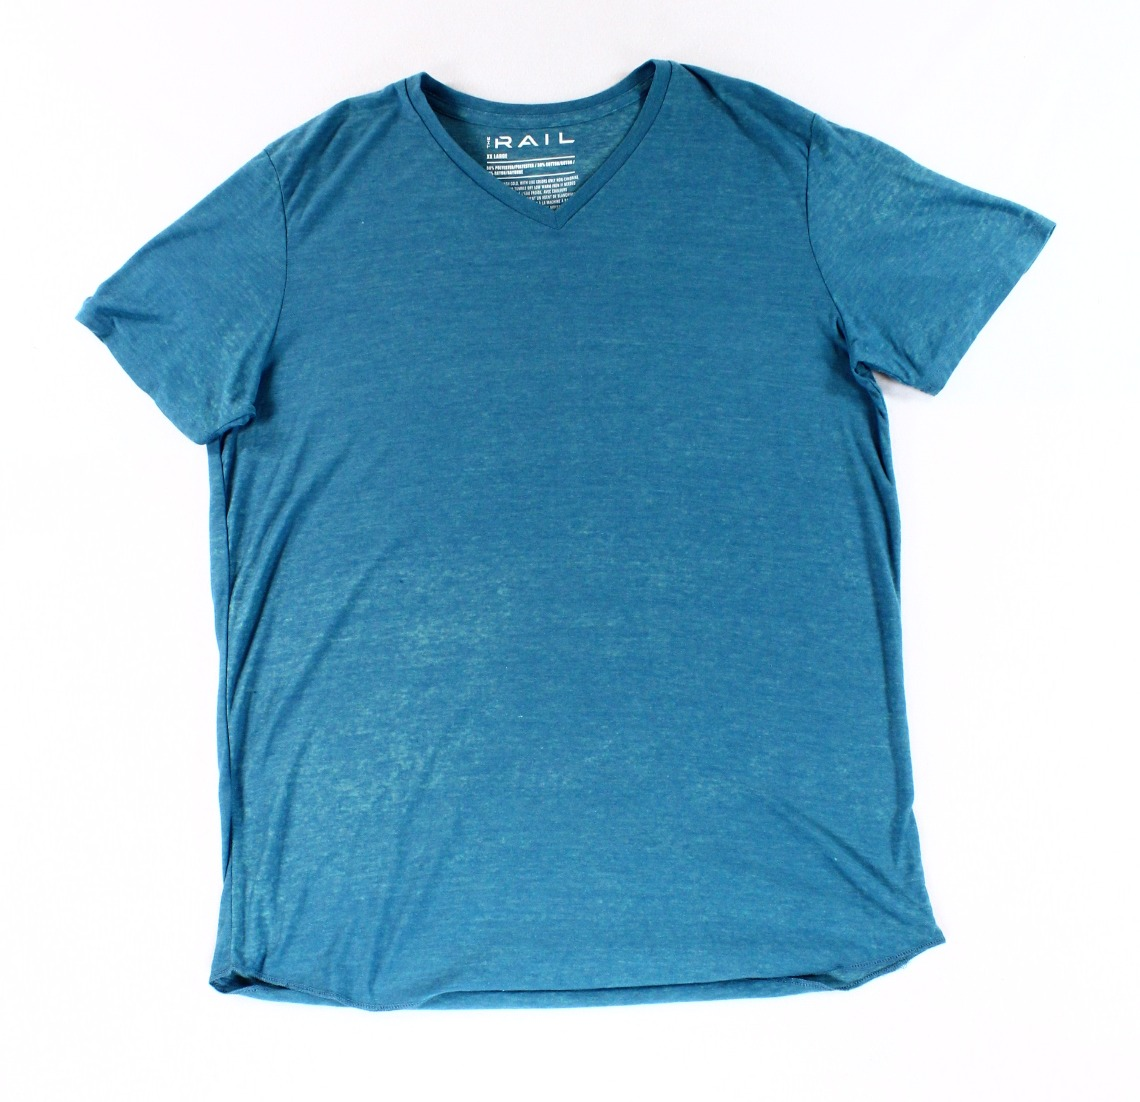 The Rail NEW Teal Steel Blue Mens Size 2XL Knit V-Neck Tee Shirt